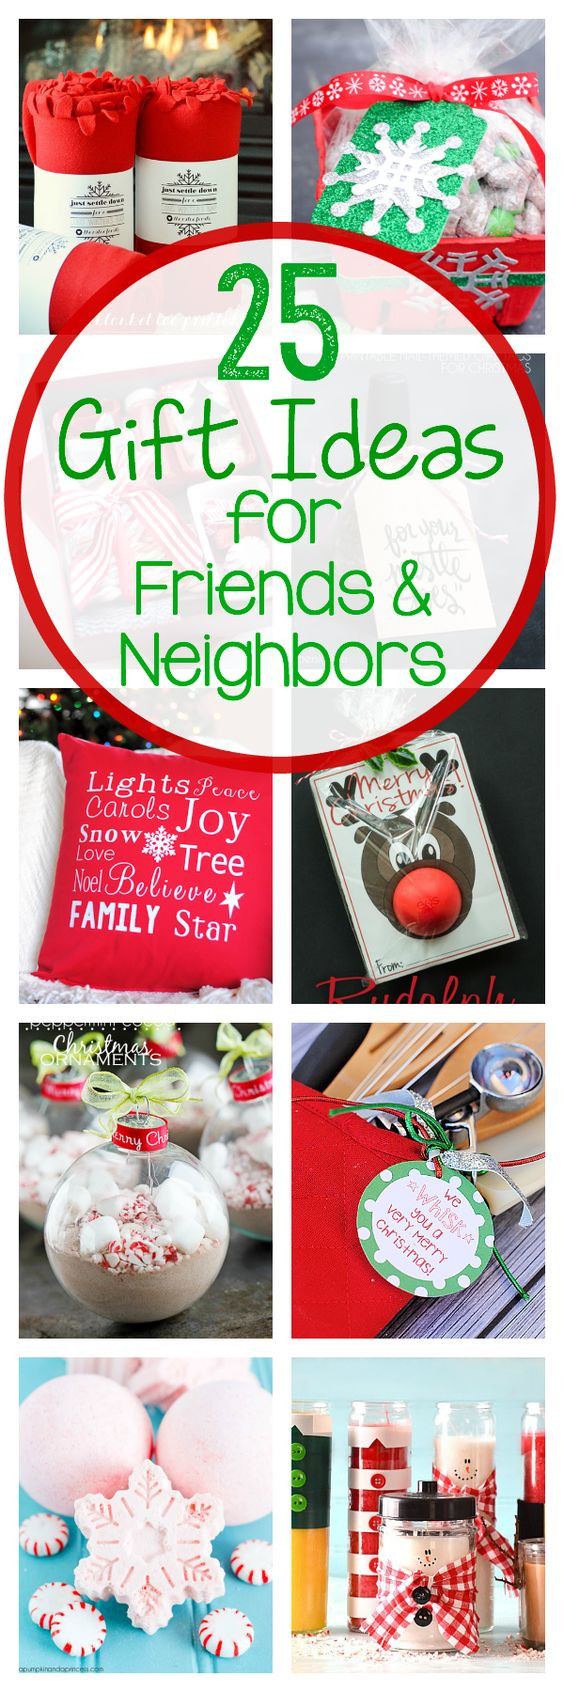 Best ideas about Good Gift Ideas For Friends . Save or Pin 25 Gift Ideas for Friends & Neighbors Now.